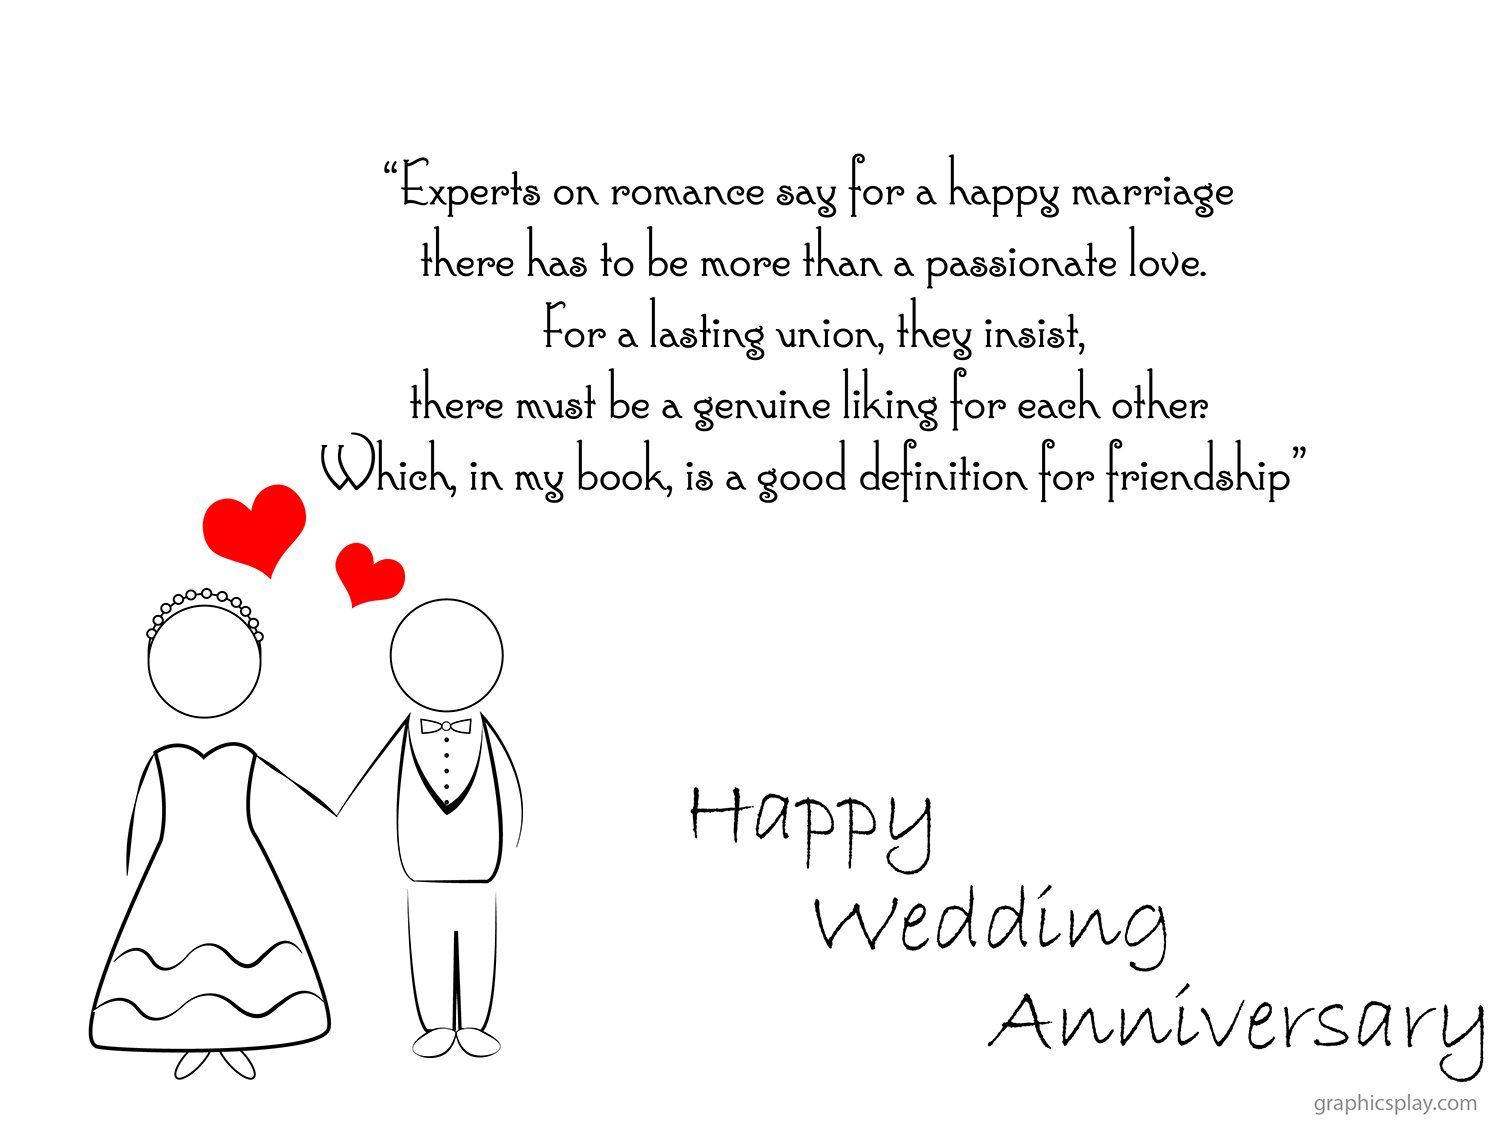 Year 3 Wedding Anniversary Gifts: Happy Wedding Anniversary Greeting With Quotes